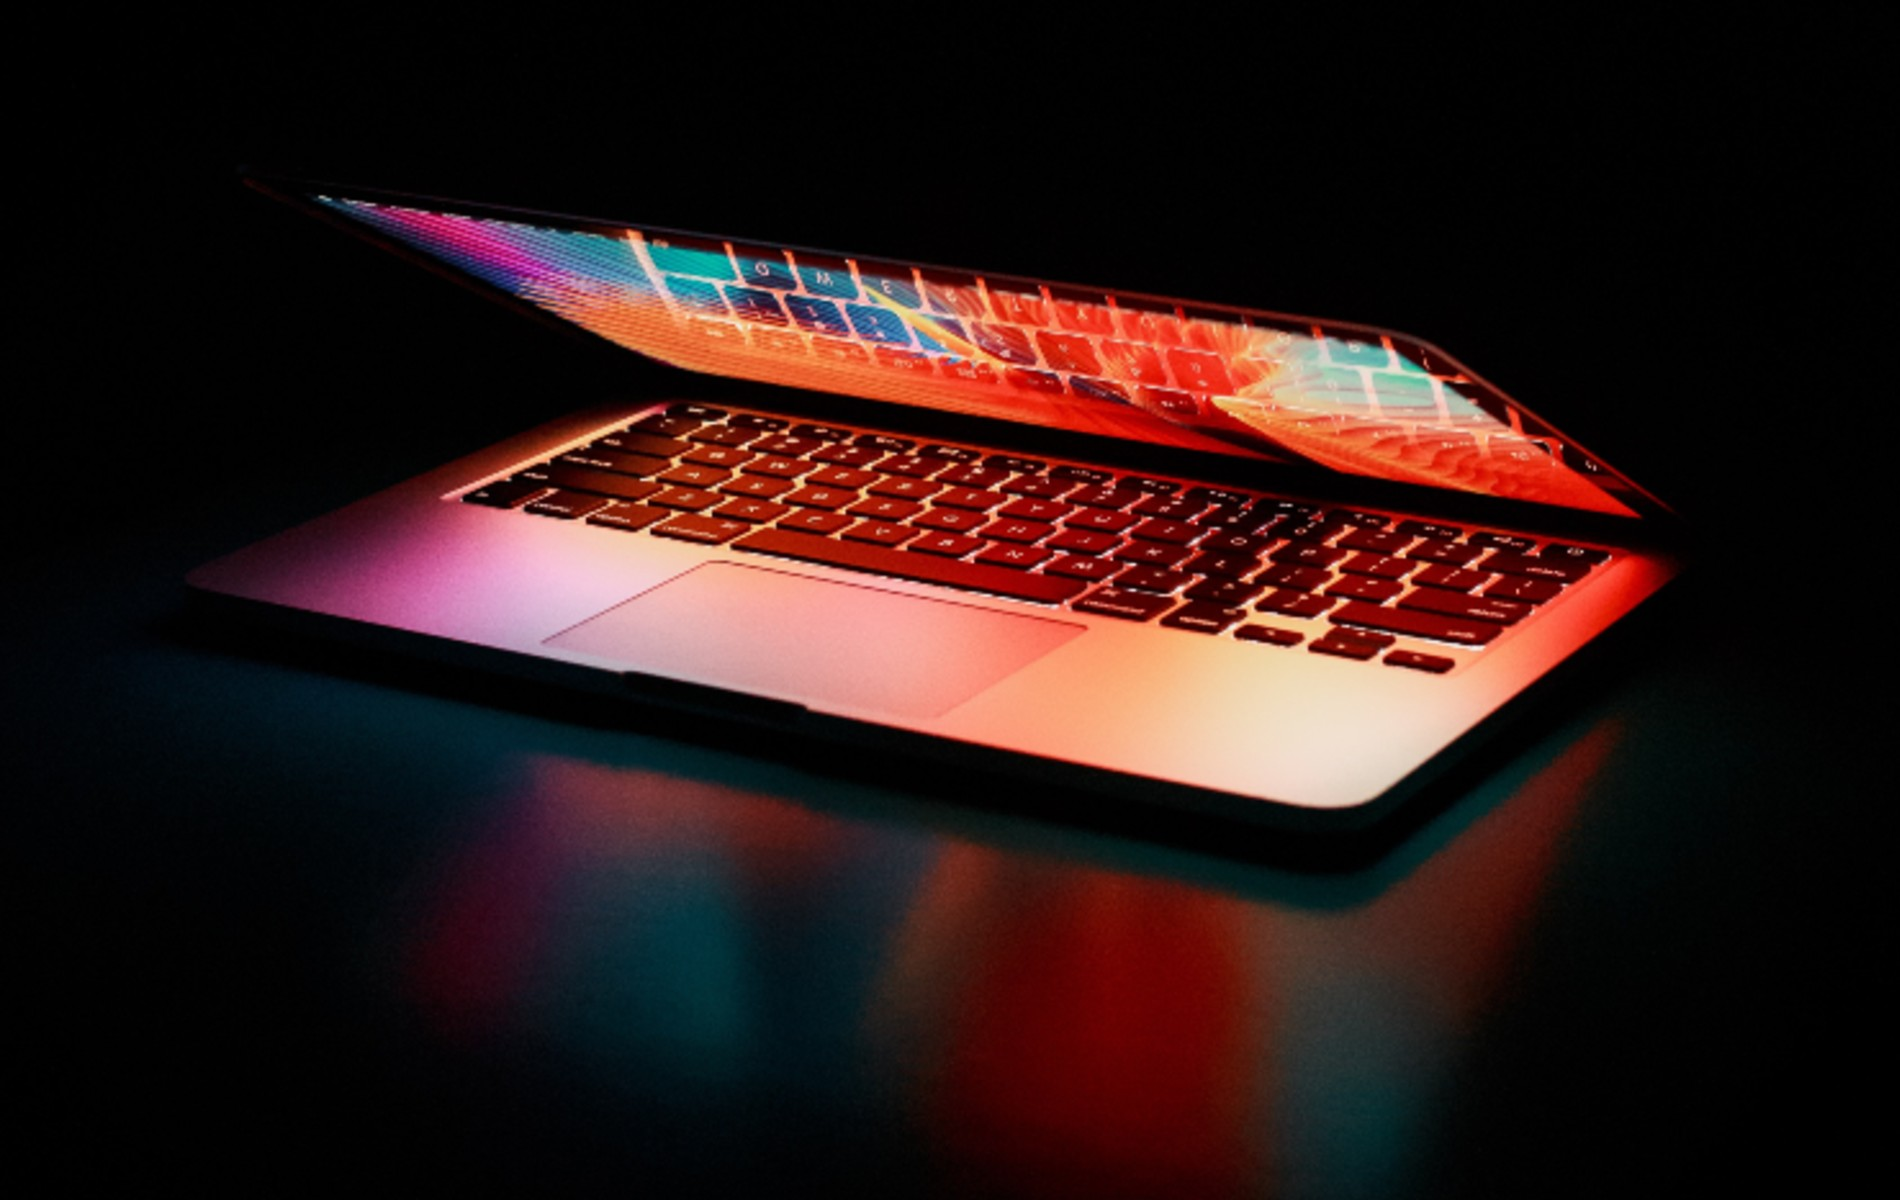 Internet Piracy in South Africa: The Conditions and Consequences